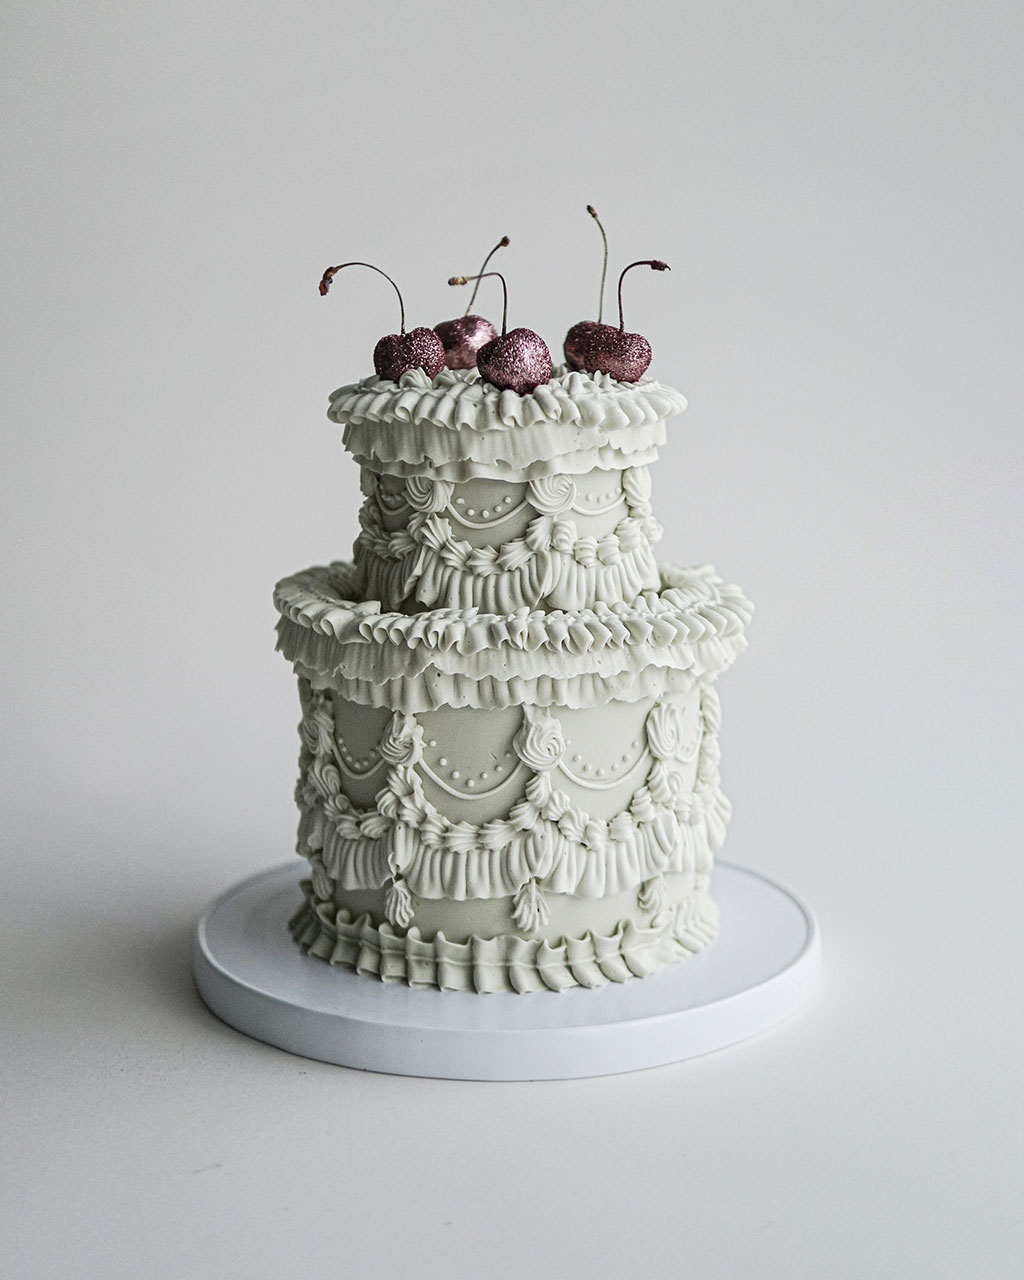 small wedding cakes  - exquisite sugary creations baroque-inspired setting